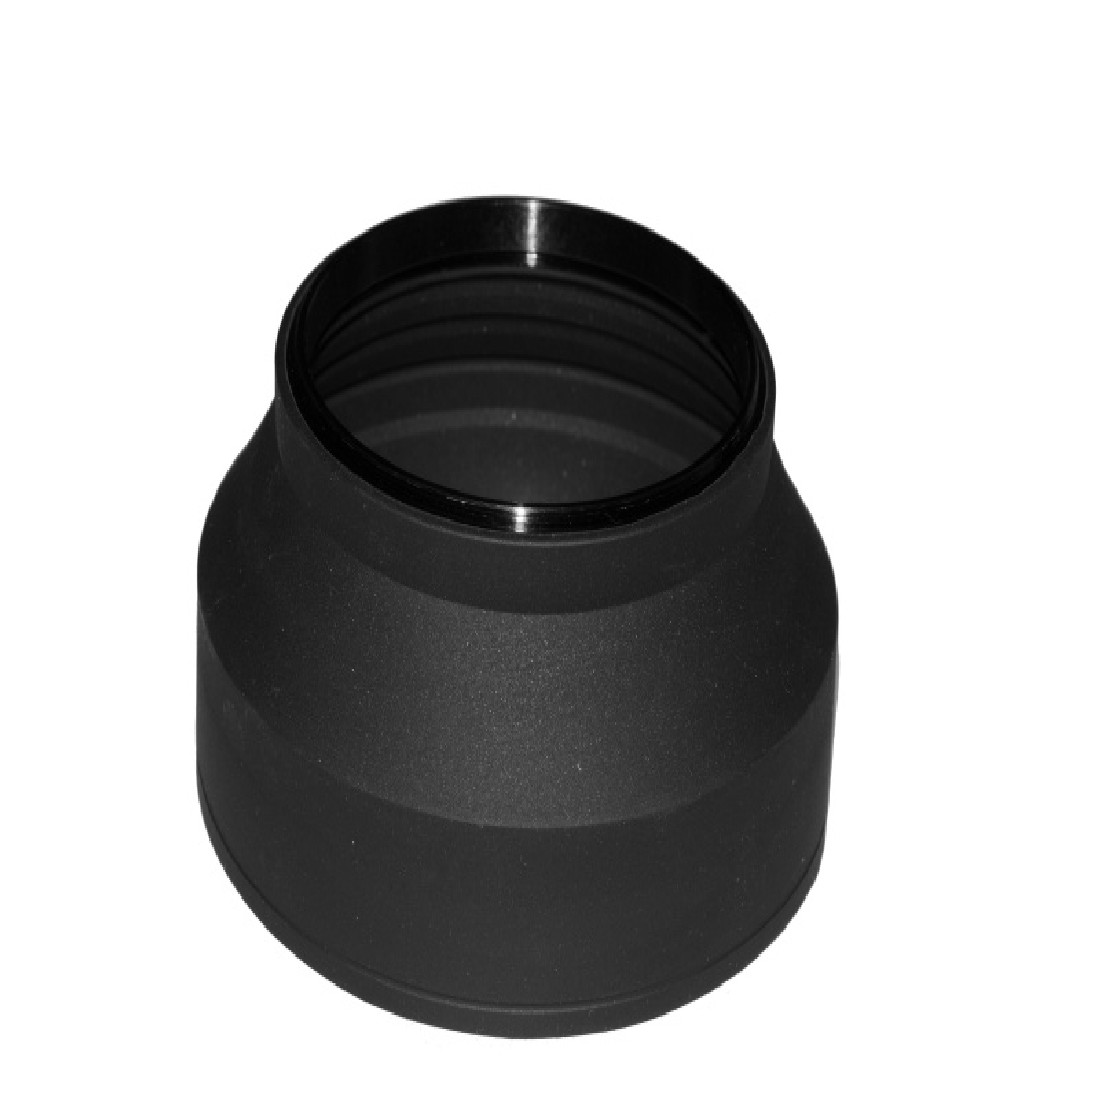 Centechia 52/58mm 3-Stage 3 in1 Collapsible Rubber Foldable Lens Hood 52/58 mm DSIR Lens for Nikon Canon camera